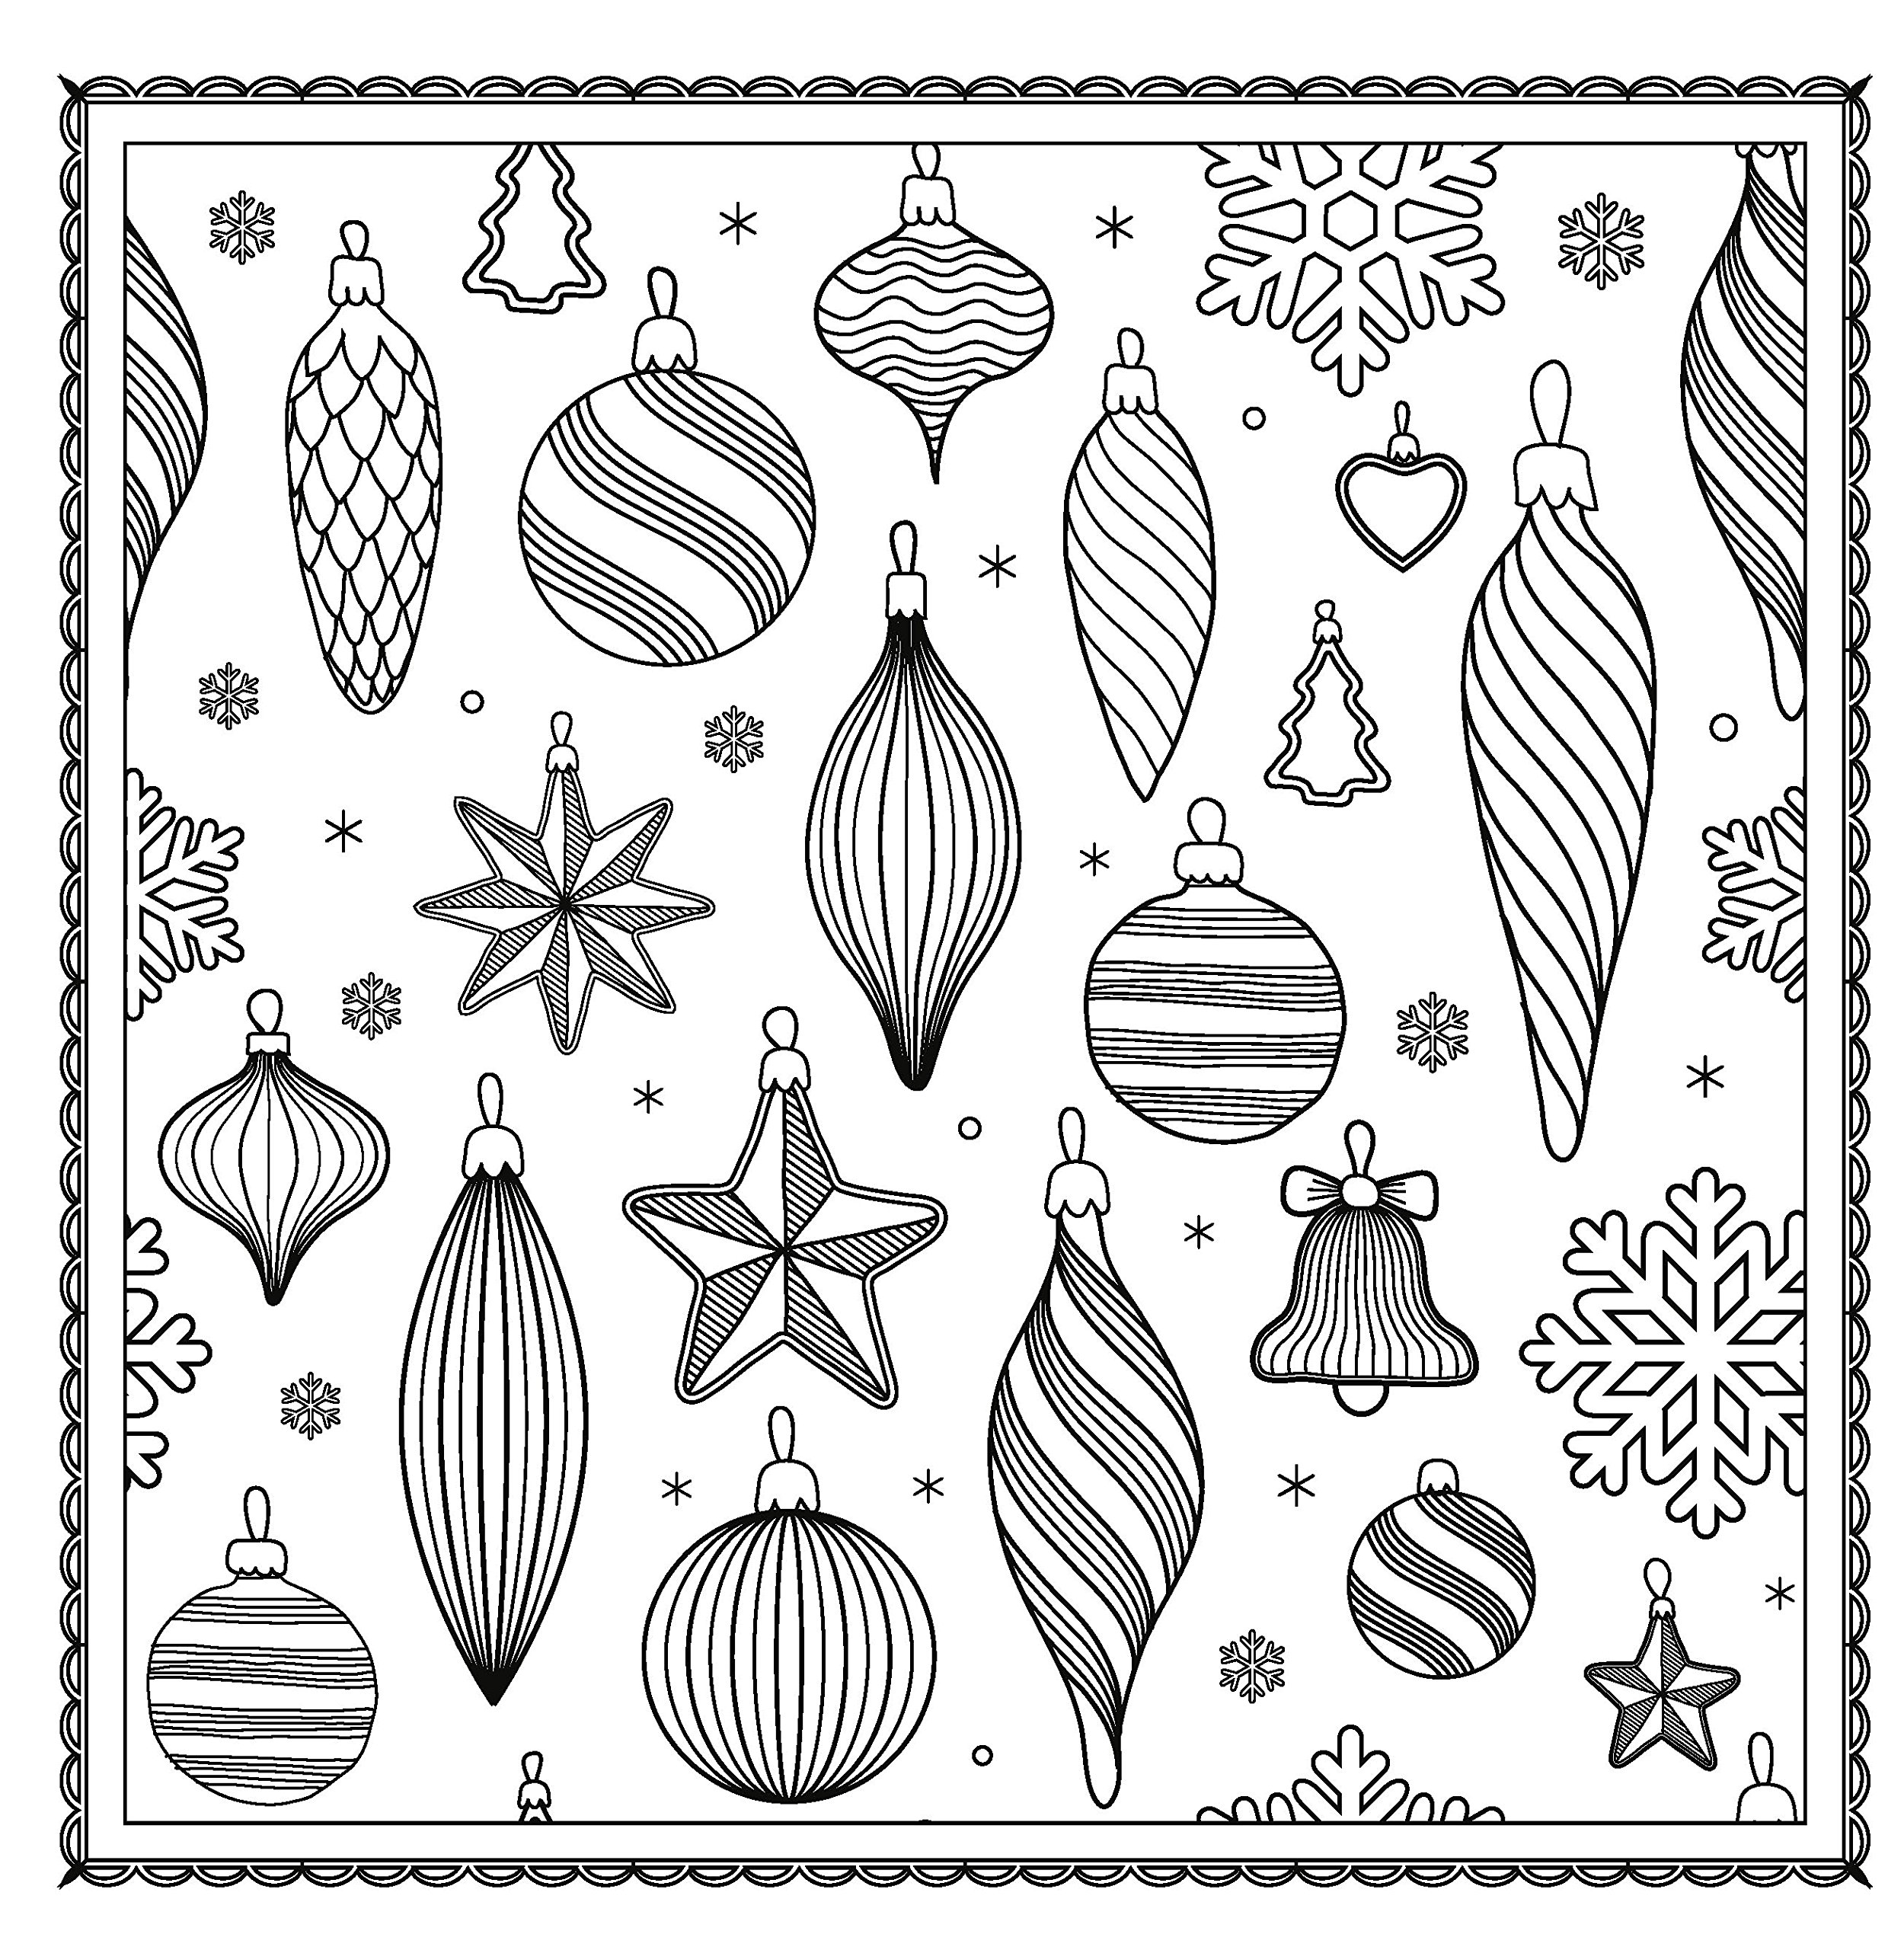 The coloring book project 2nd edition - Amazon Com Winter Magic Beautiful Holiday Patterns Coloring Book For Adults Color Magic 9781438007335 Arsedition Books